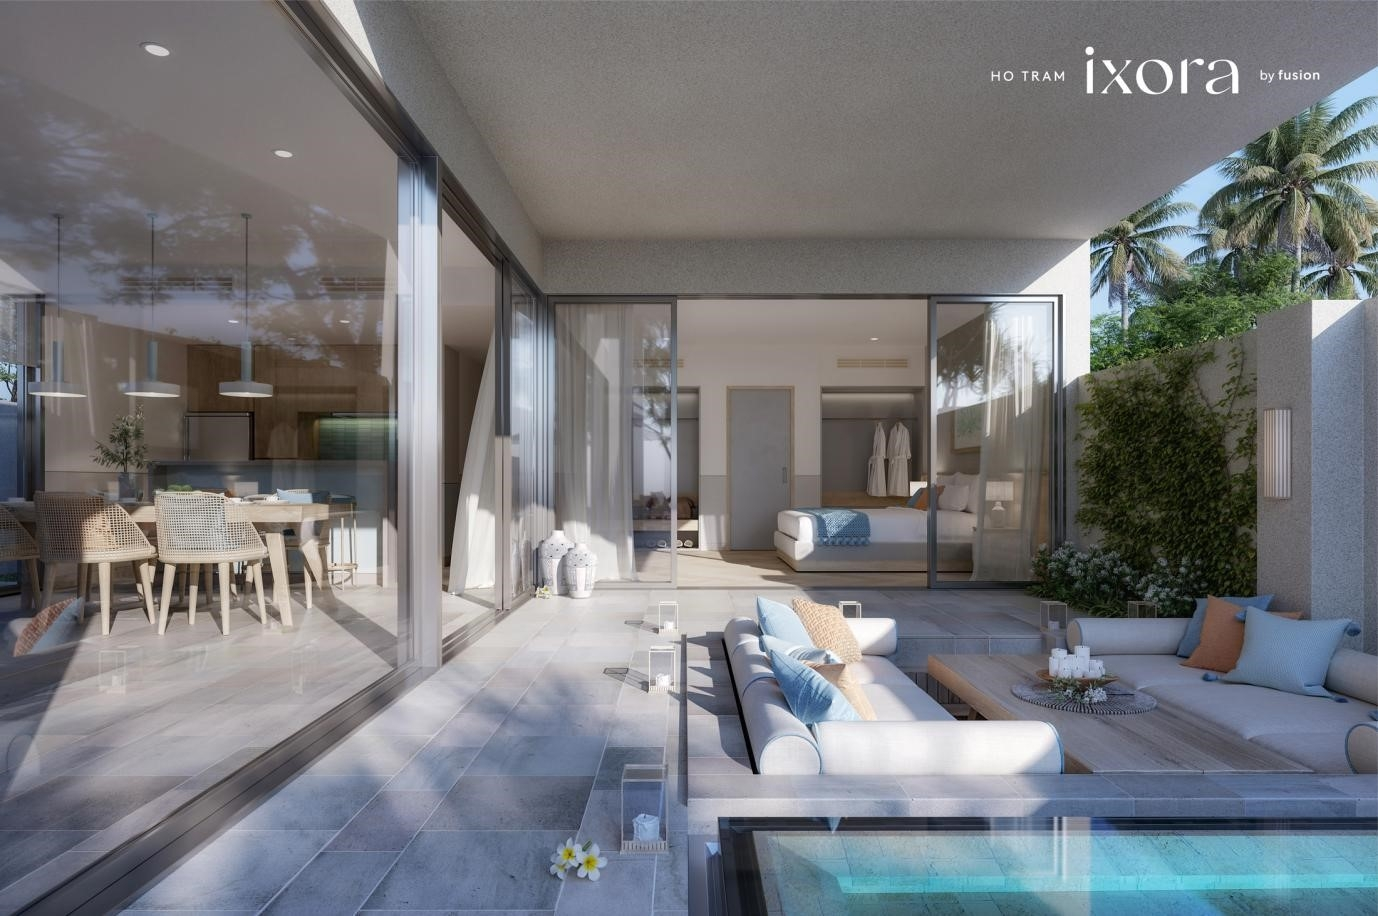 ixora ho tram by fusion unveils exclusive villa collection on the beach